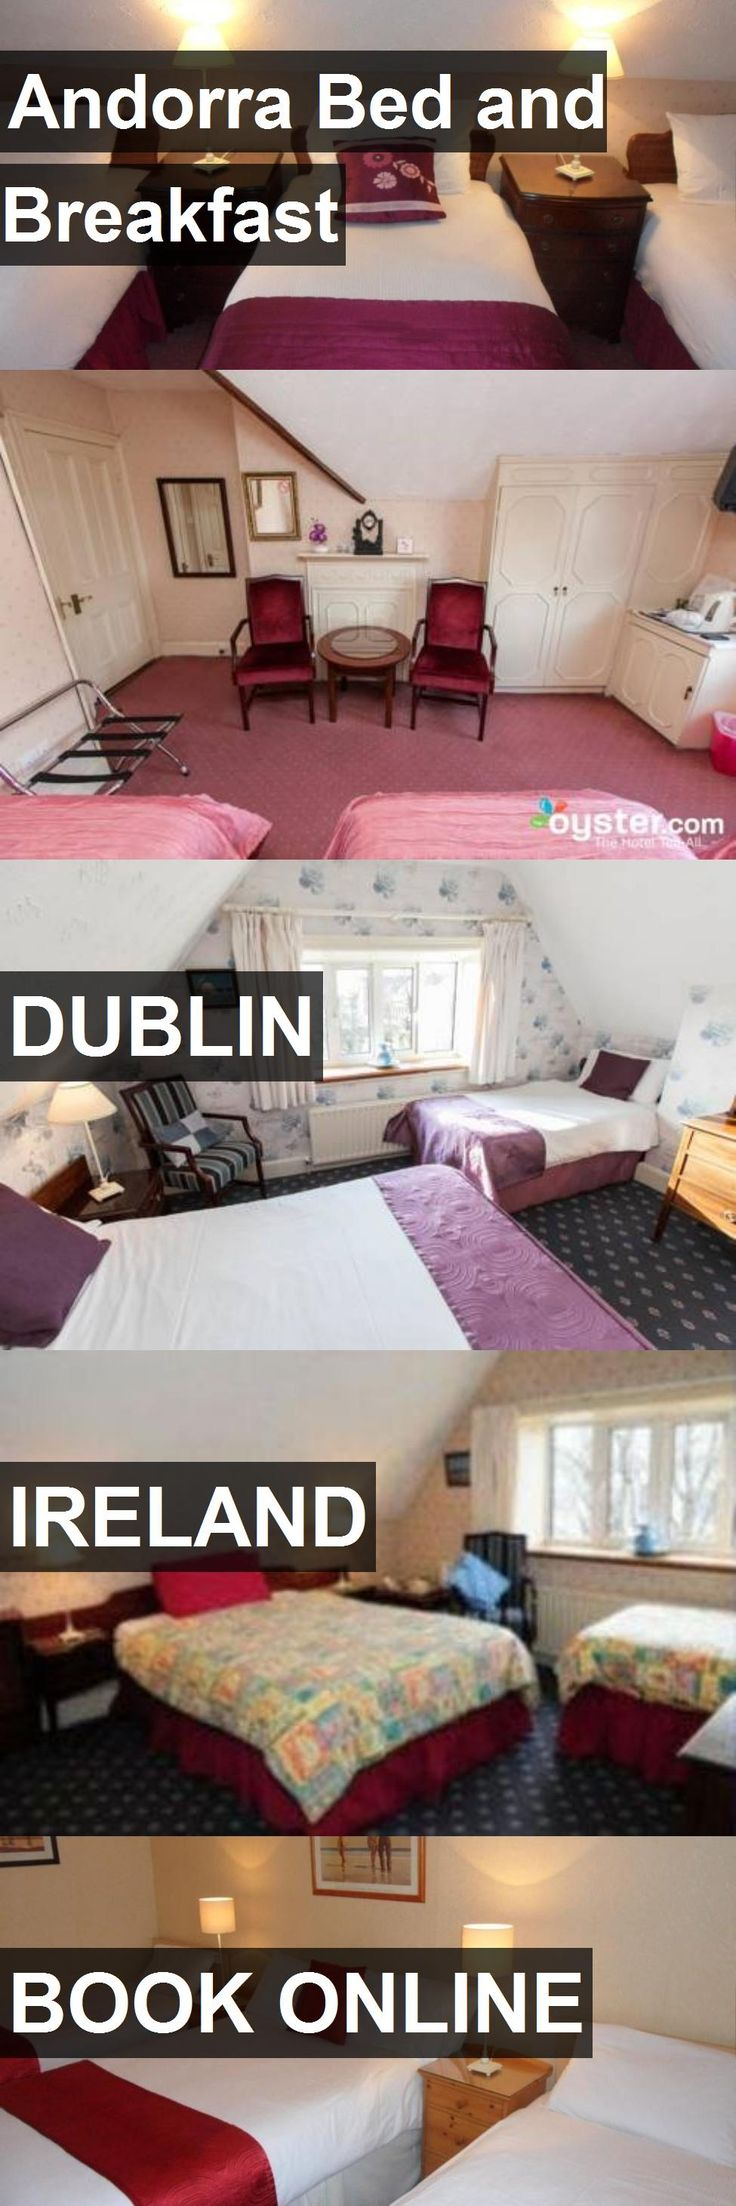 Hotel Andorra Bed and Breakfast in Dublin, Ireland. For more information, photos, reviews and best prices please follow the link. #Ireland #Dublin #AndorraBedandBreakfast #hotel #travel #vacation